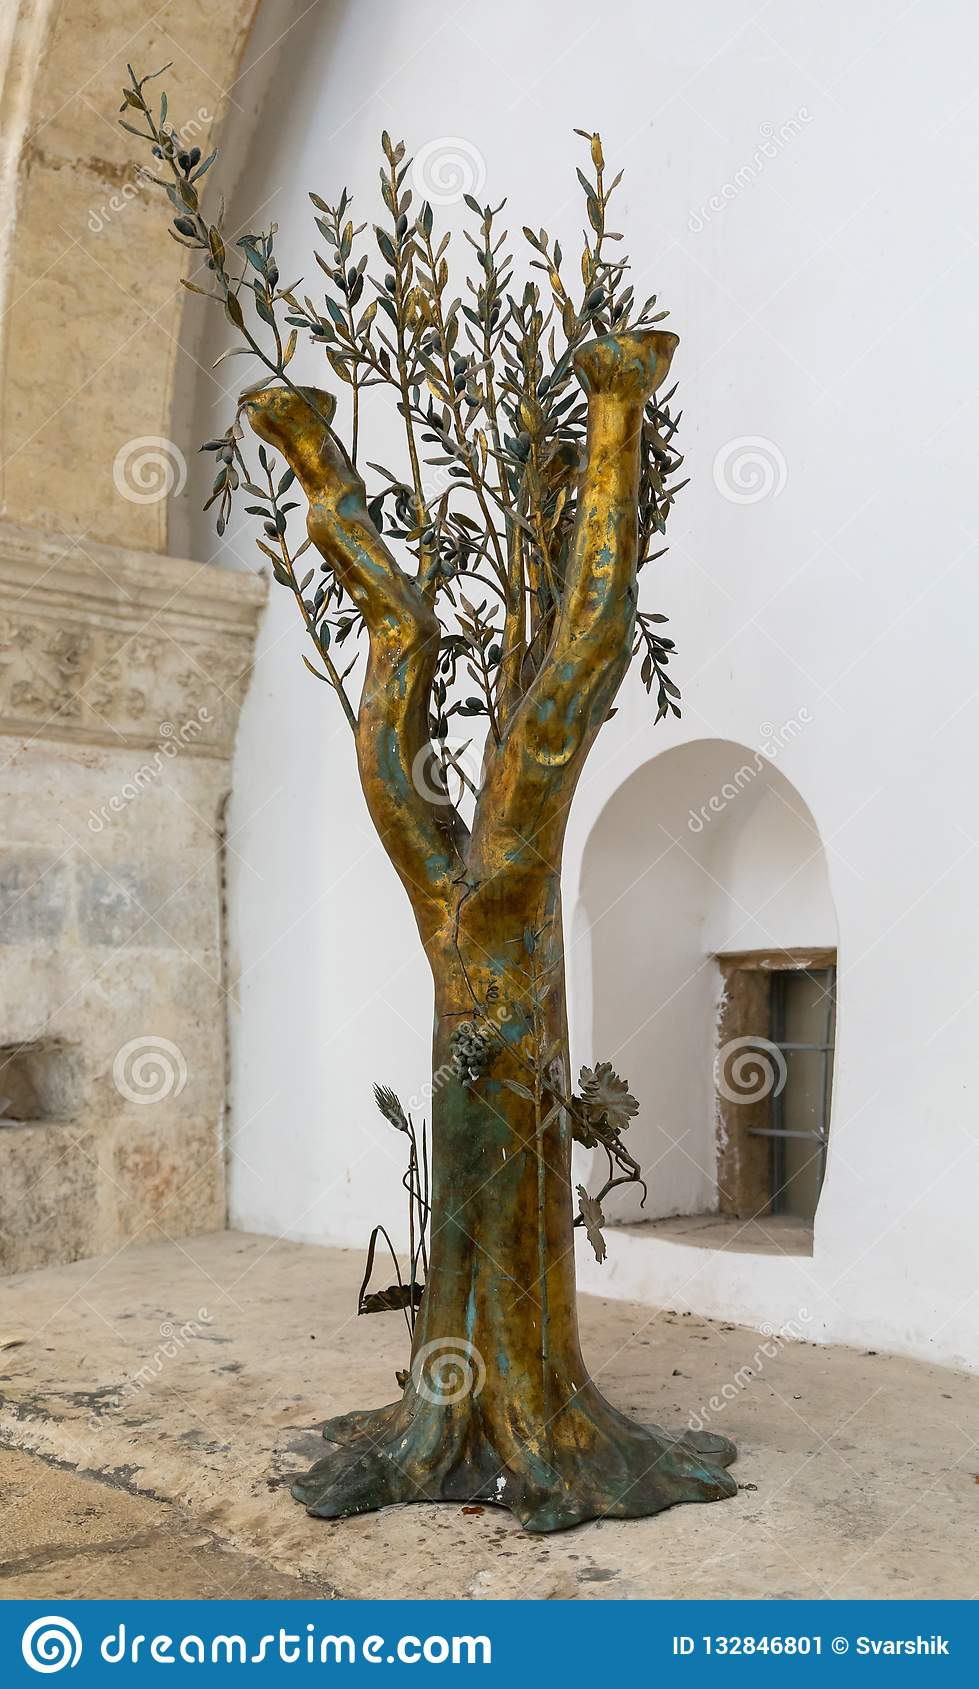 Golden Olive Tree In The Upper Room Of The Last Supper